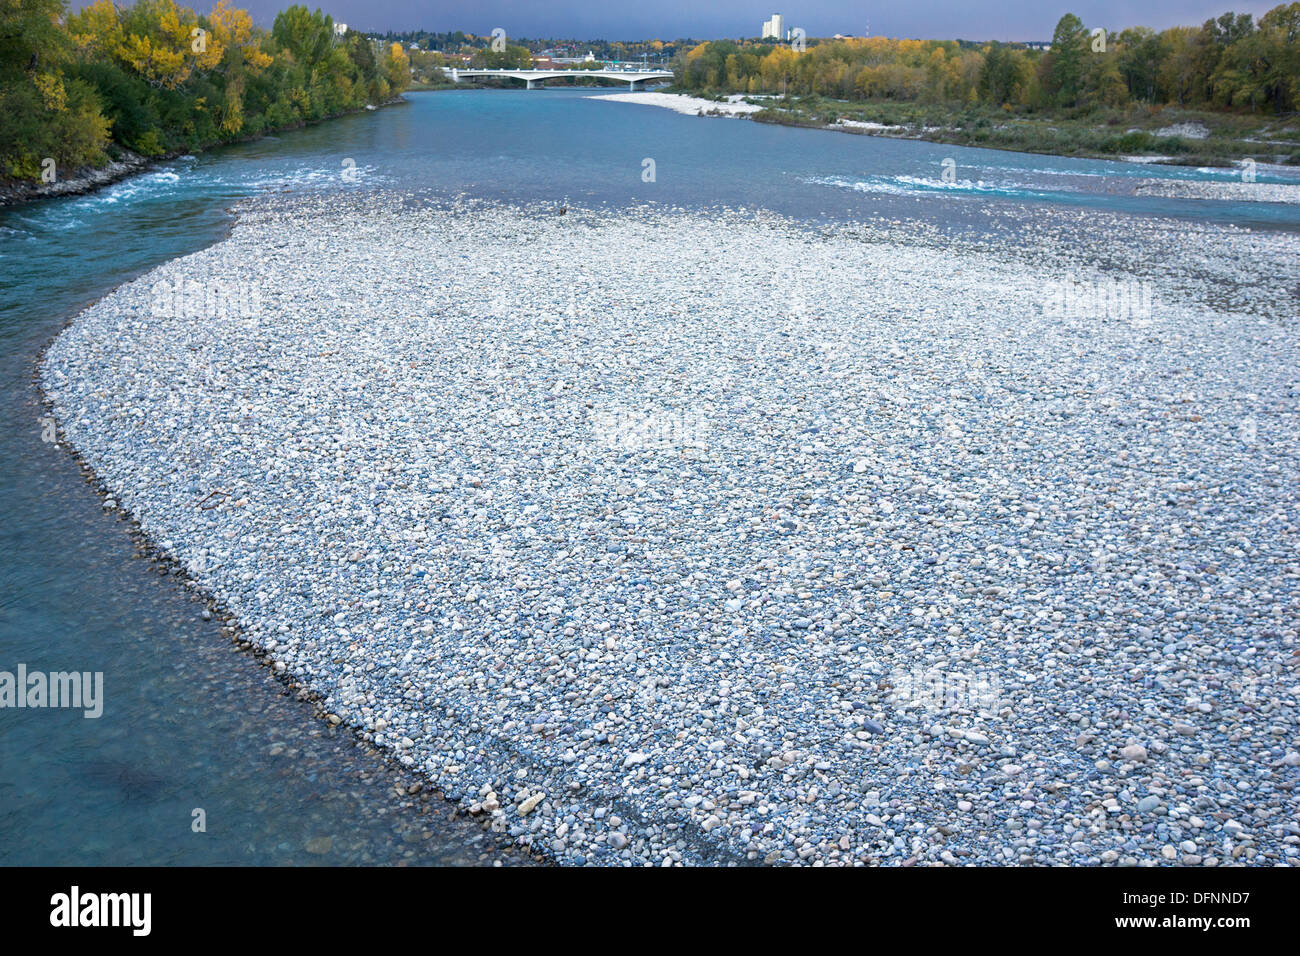 Newly deposited rocks and gravel from June 2013 flood of the Bow River. - Stock Image